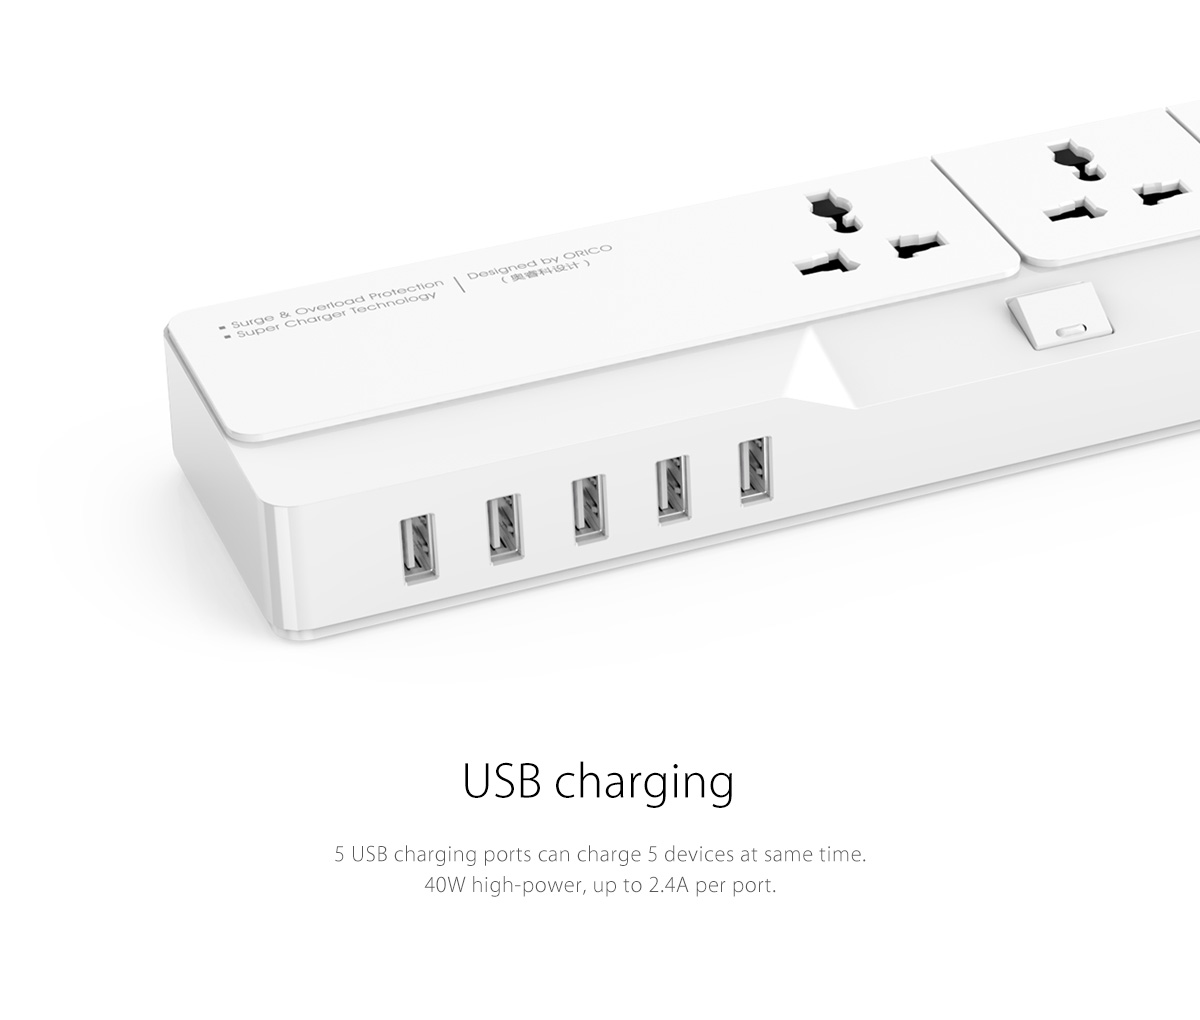 power strip with usb charging ports can charge five devices at the same time.